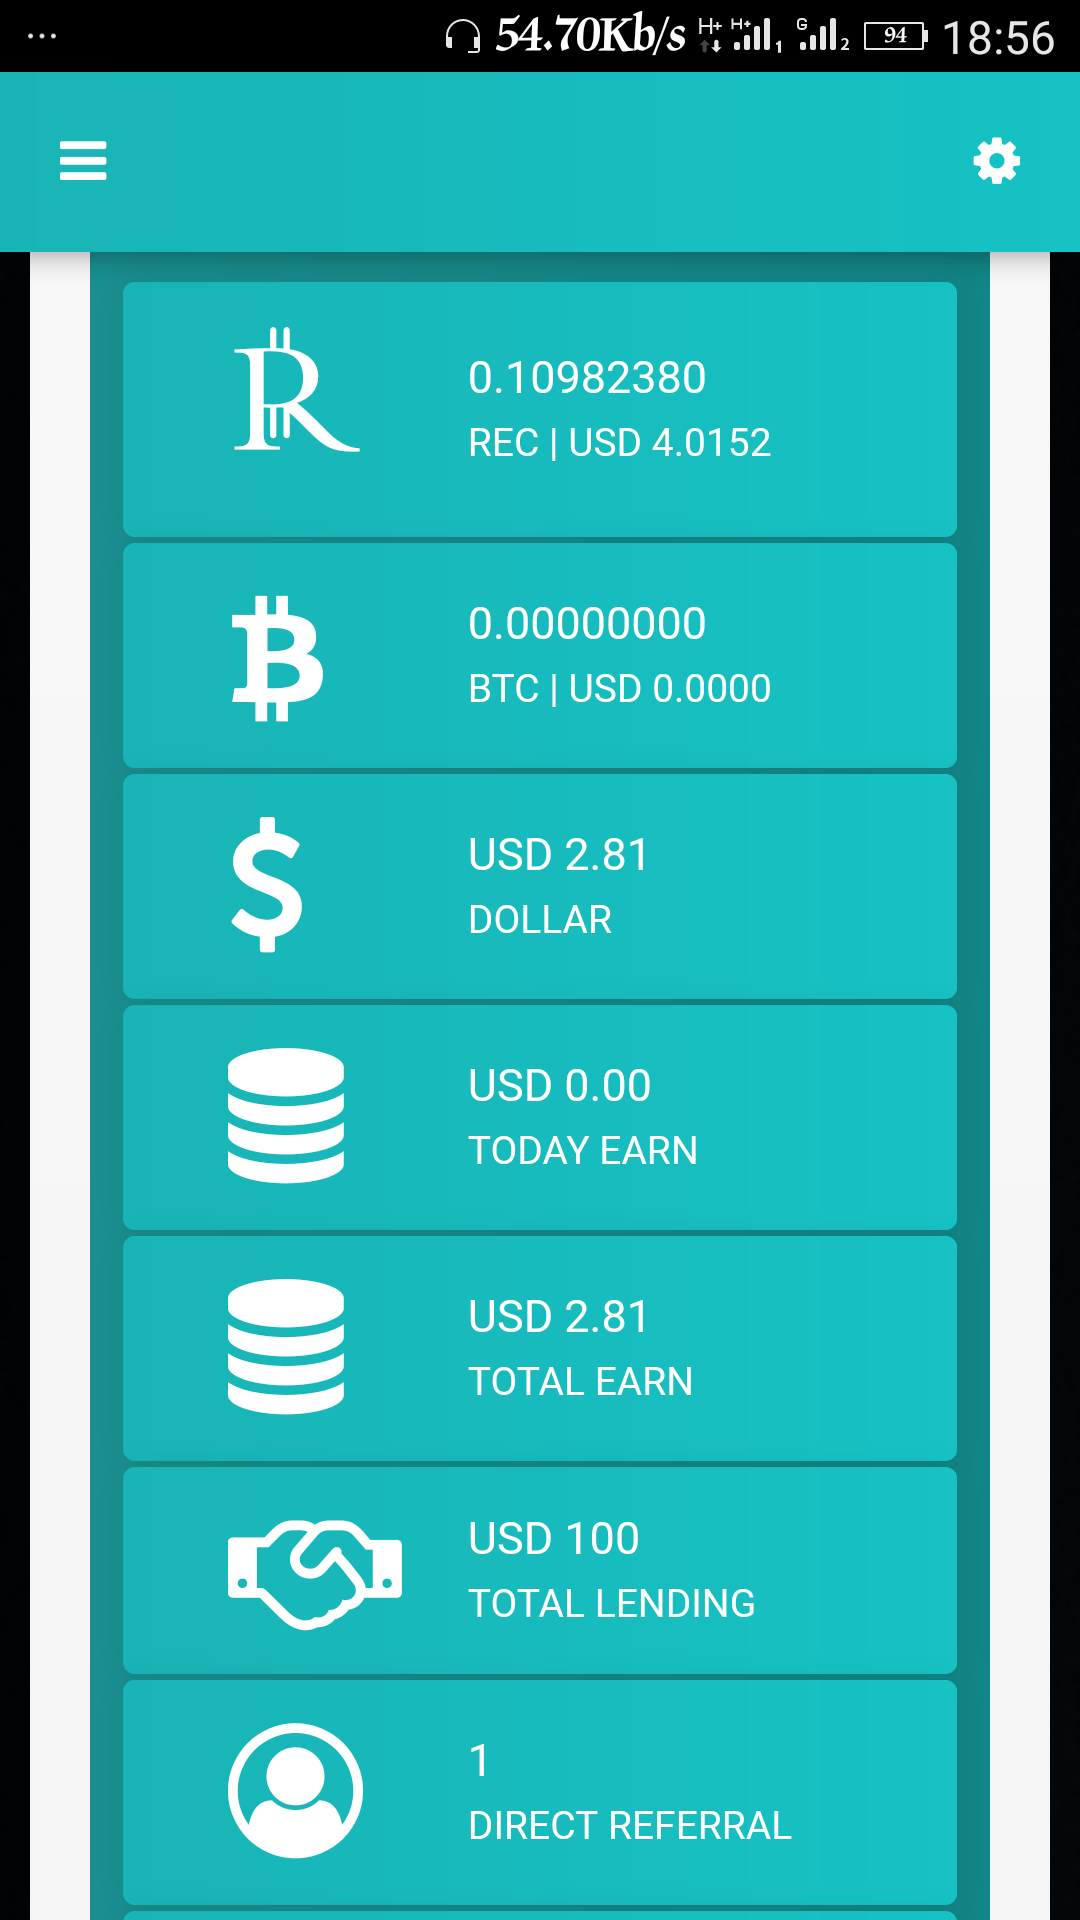 Screenshot_20171011-185626.png-Regalcoin Lending 2nd Day! Coin @ $36 With 86% Climb In 24 Hours